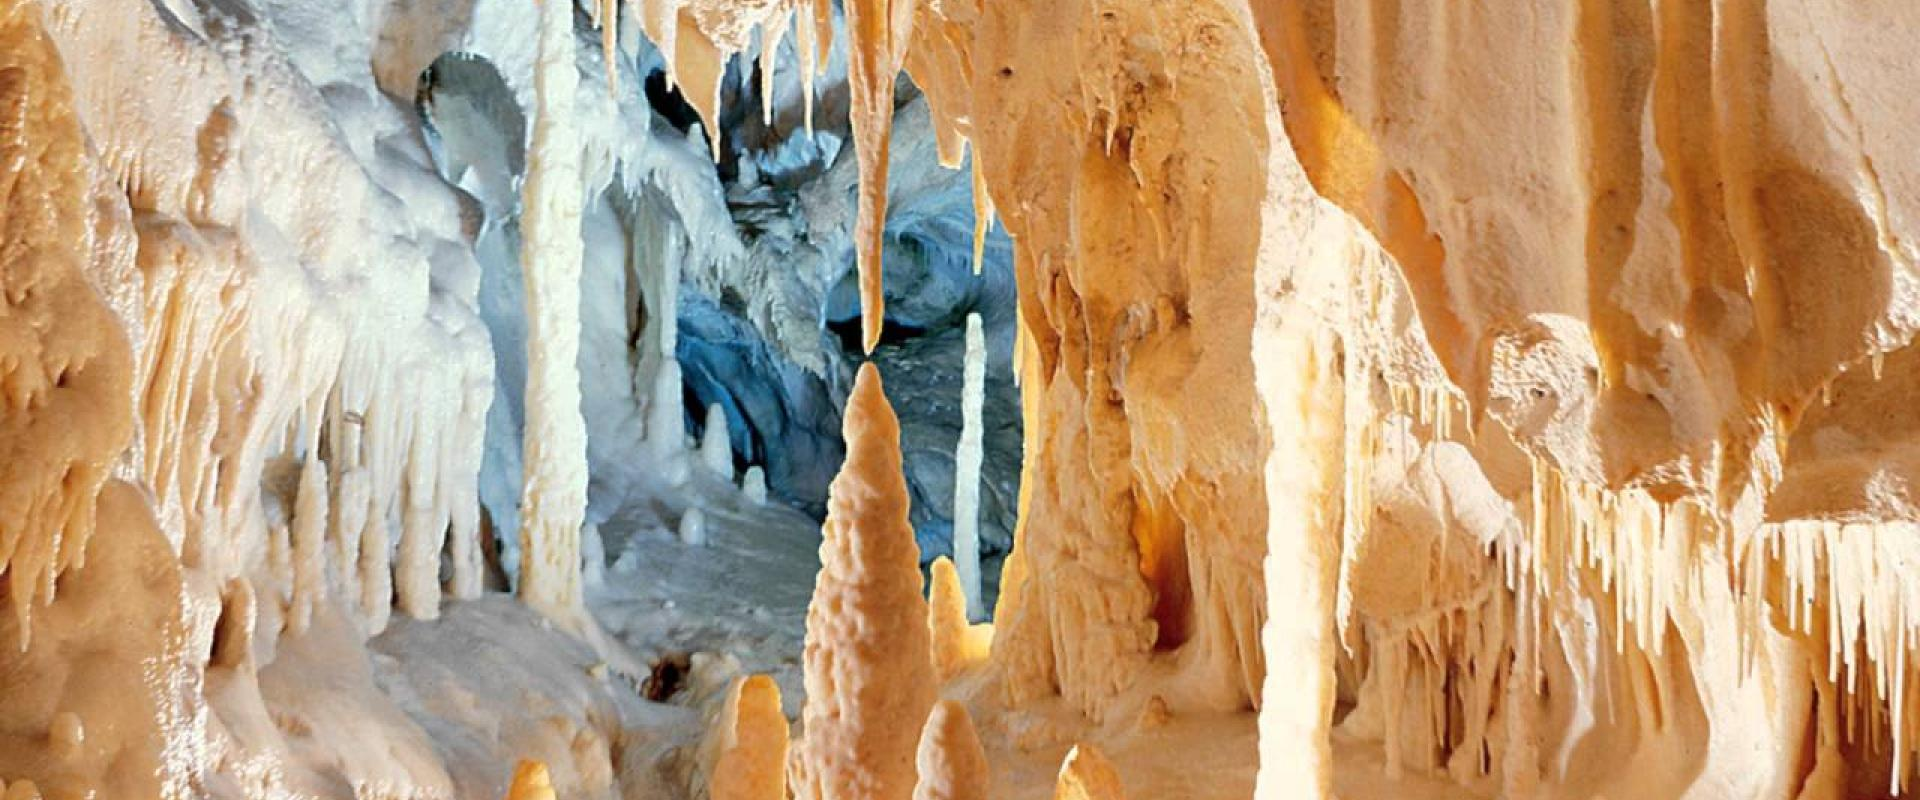 Guided tour inside Frasassi Caves